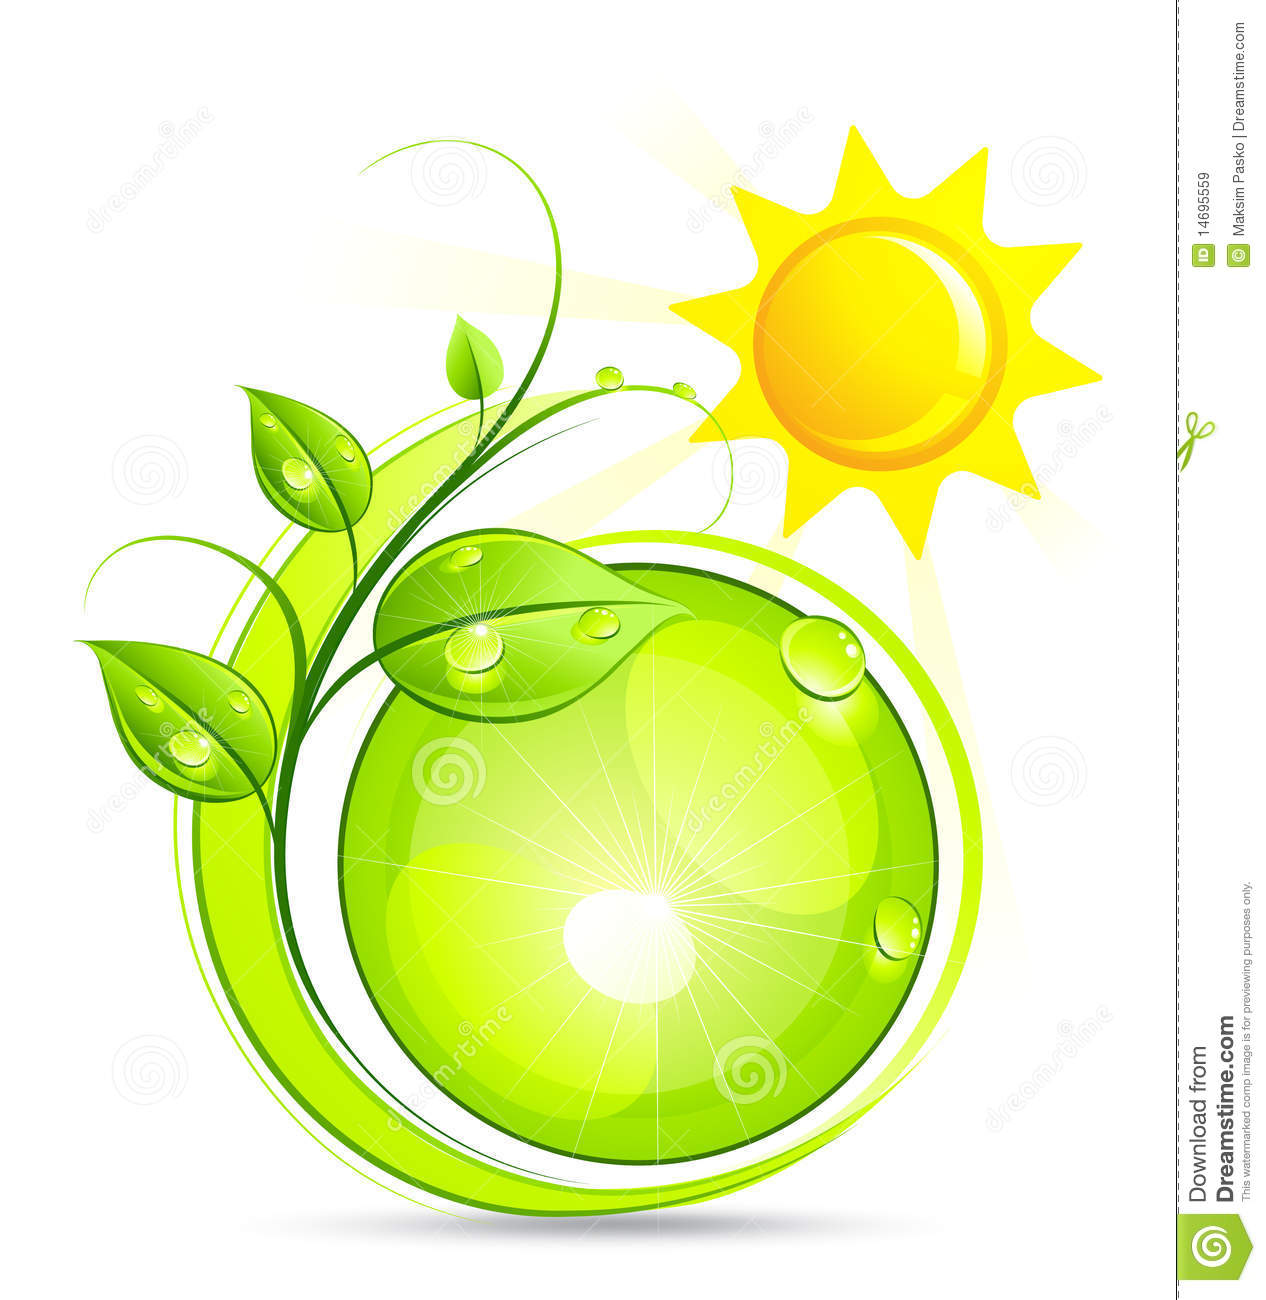 Sun And Plant Illustration Royalty Free Stock Images - Image: 14695559